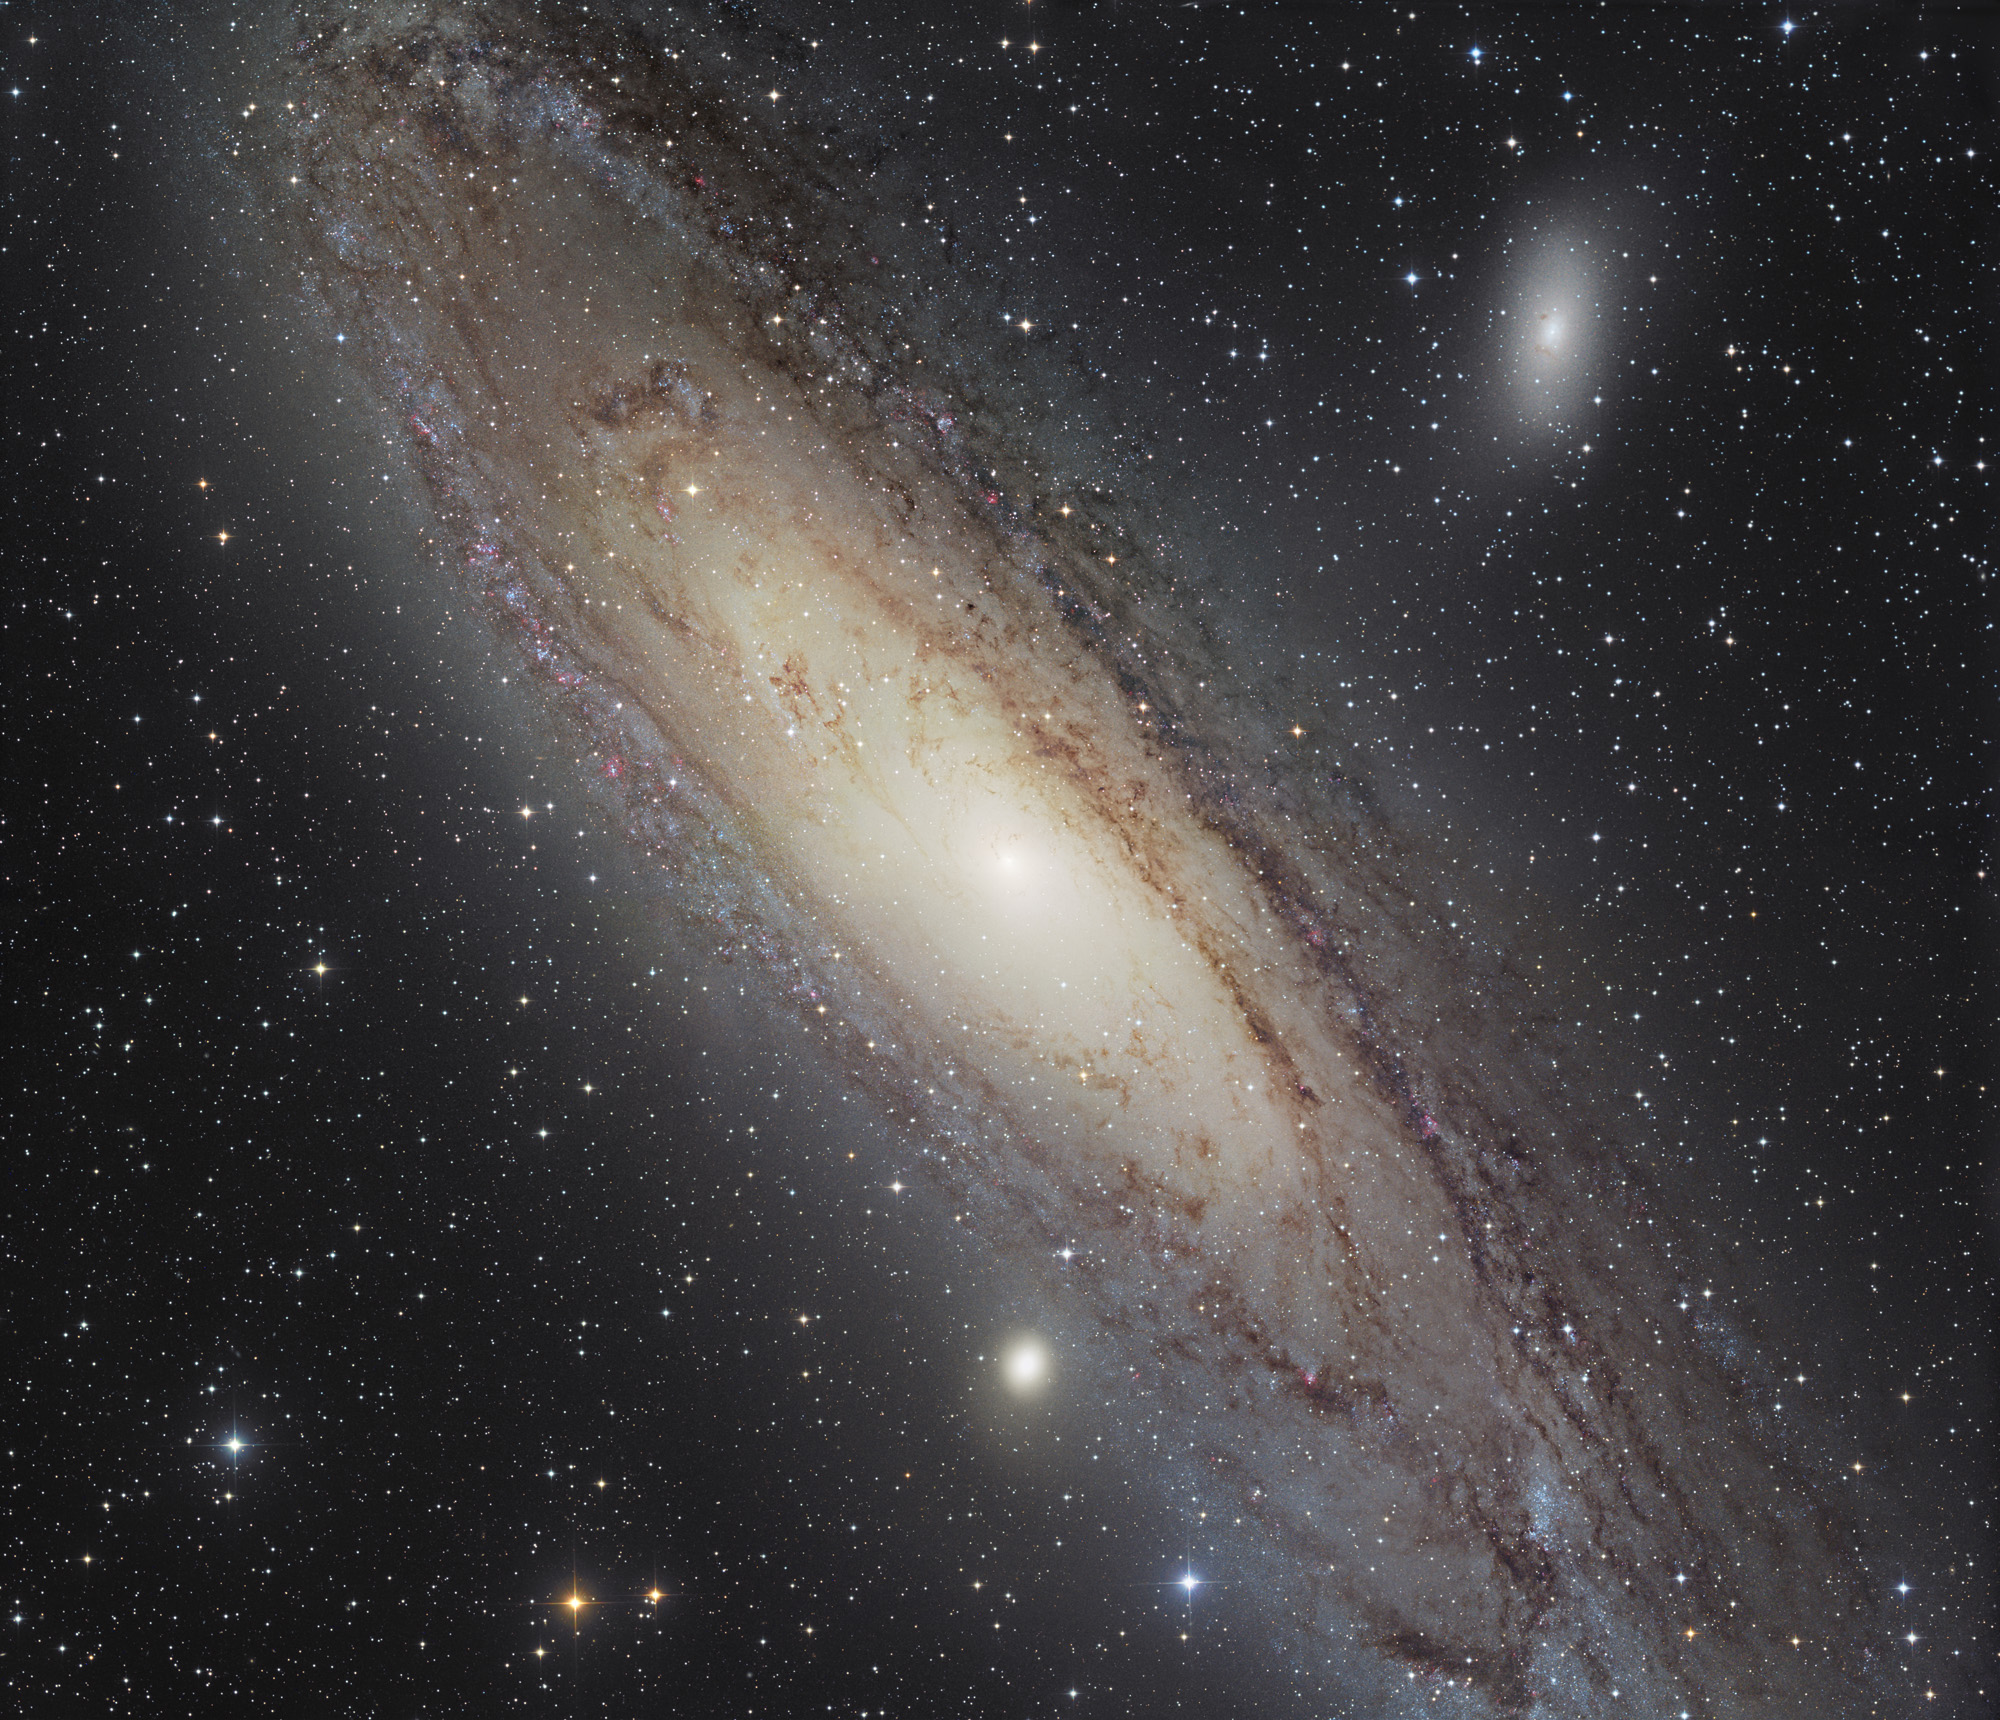 andromeda galaxy - photo #24